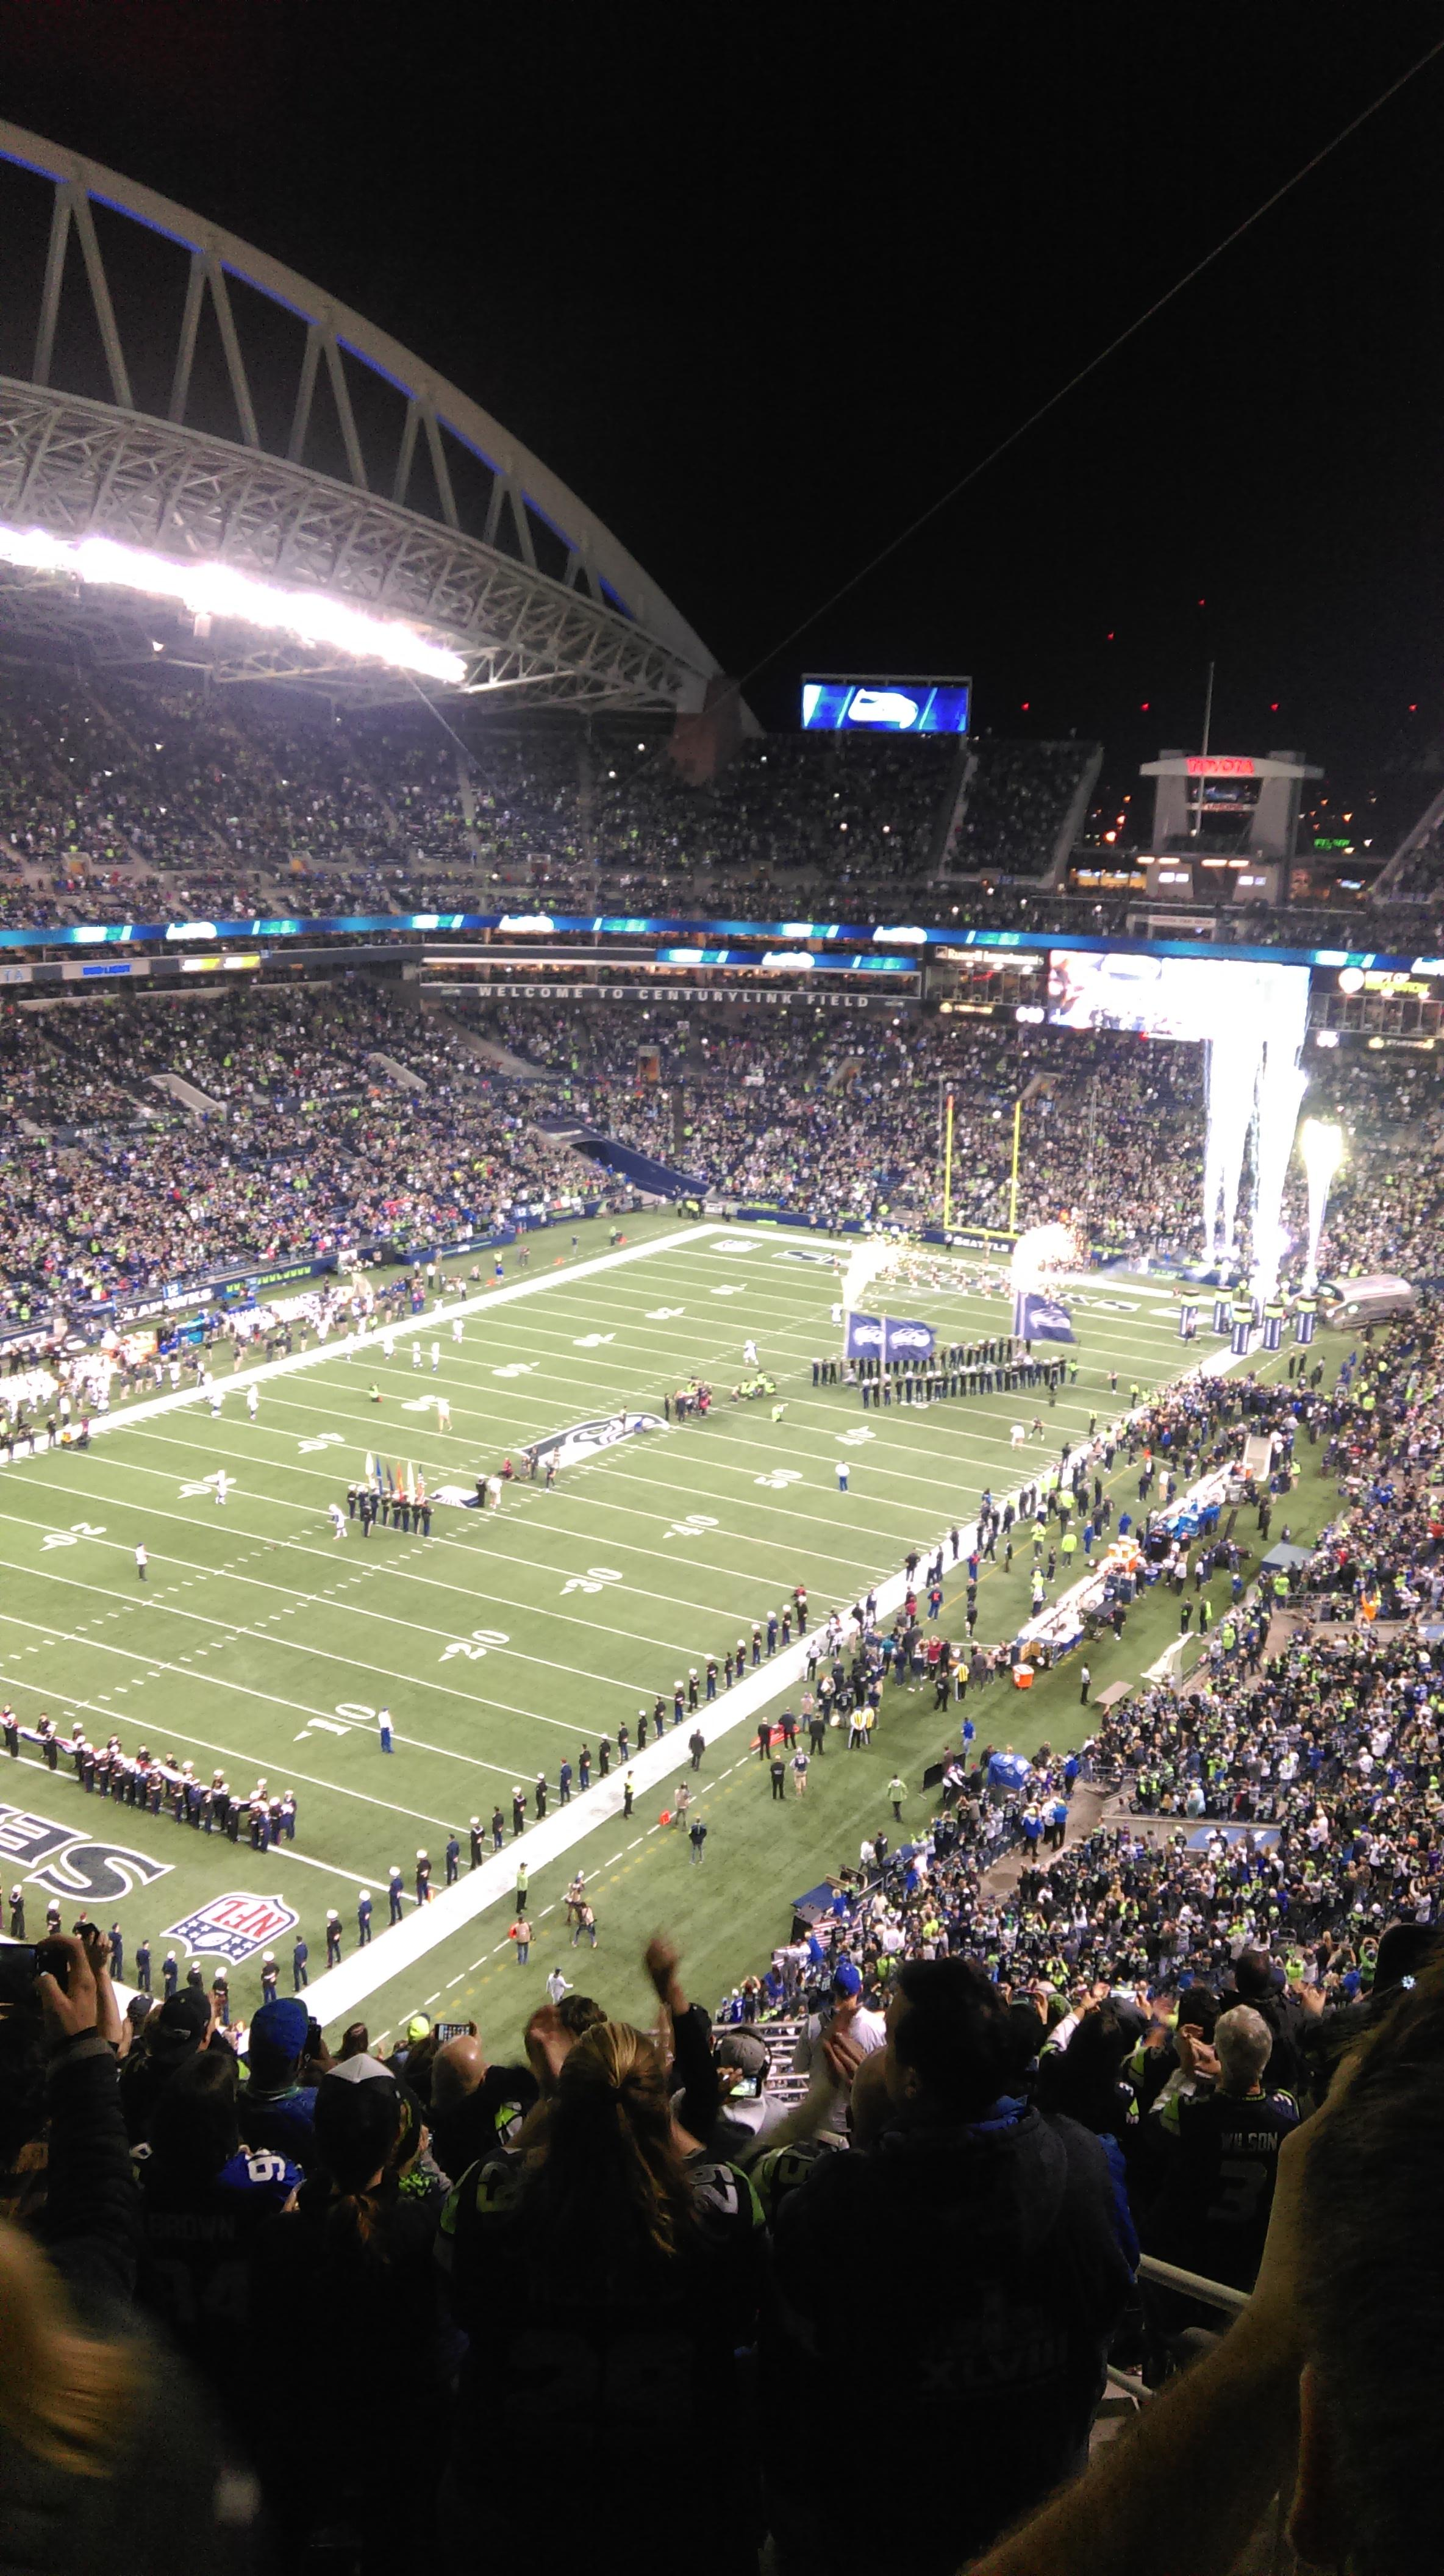 CenturyLink Field Section 344 Row W Seat 2